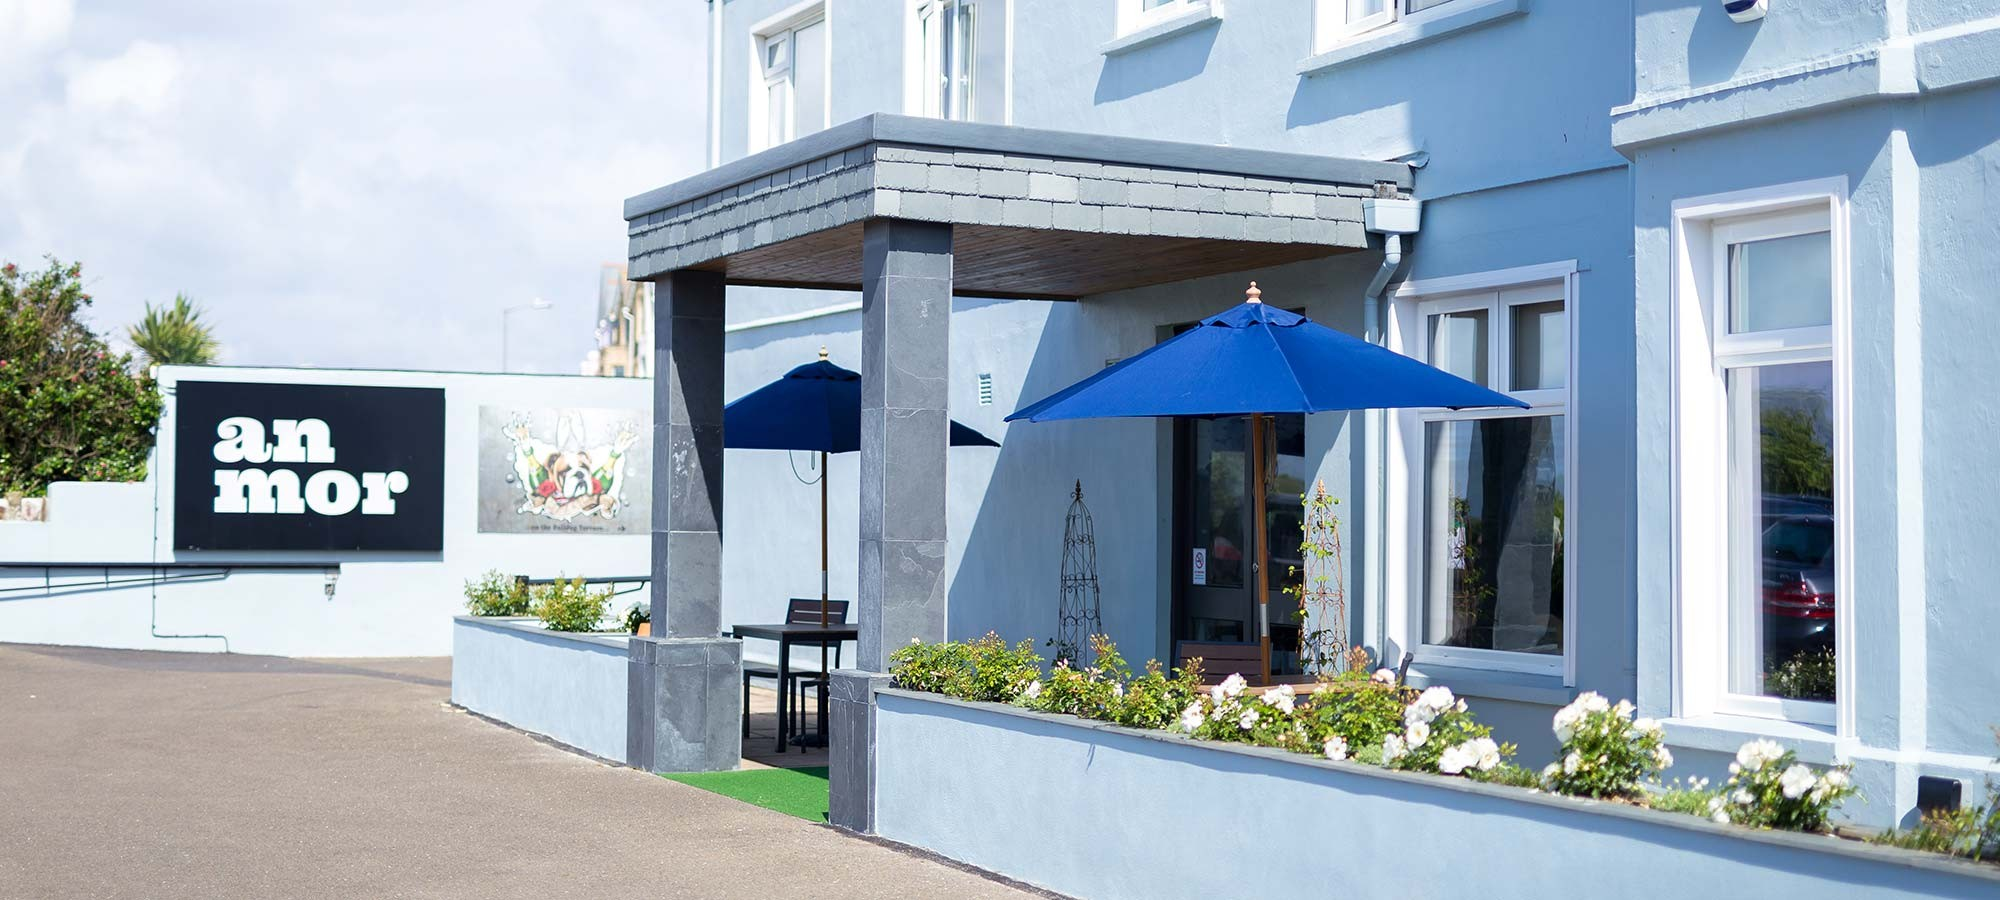 Things to Do in Bude | Things to Do in North Cornwall